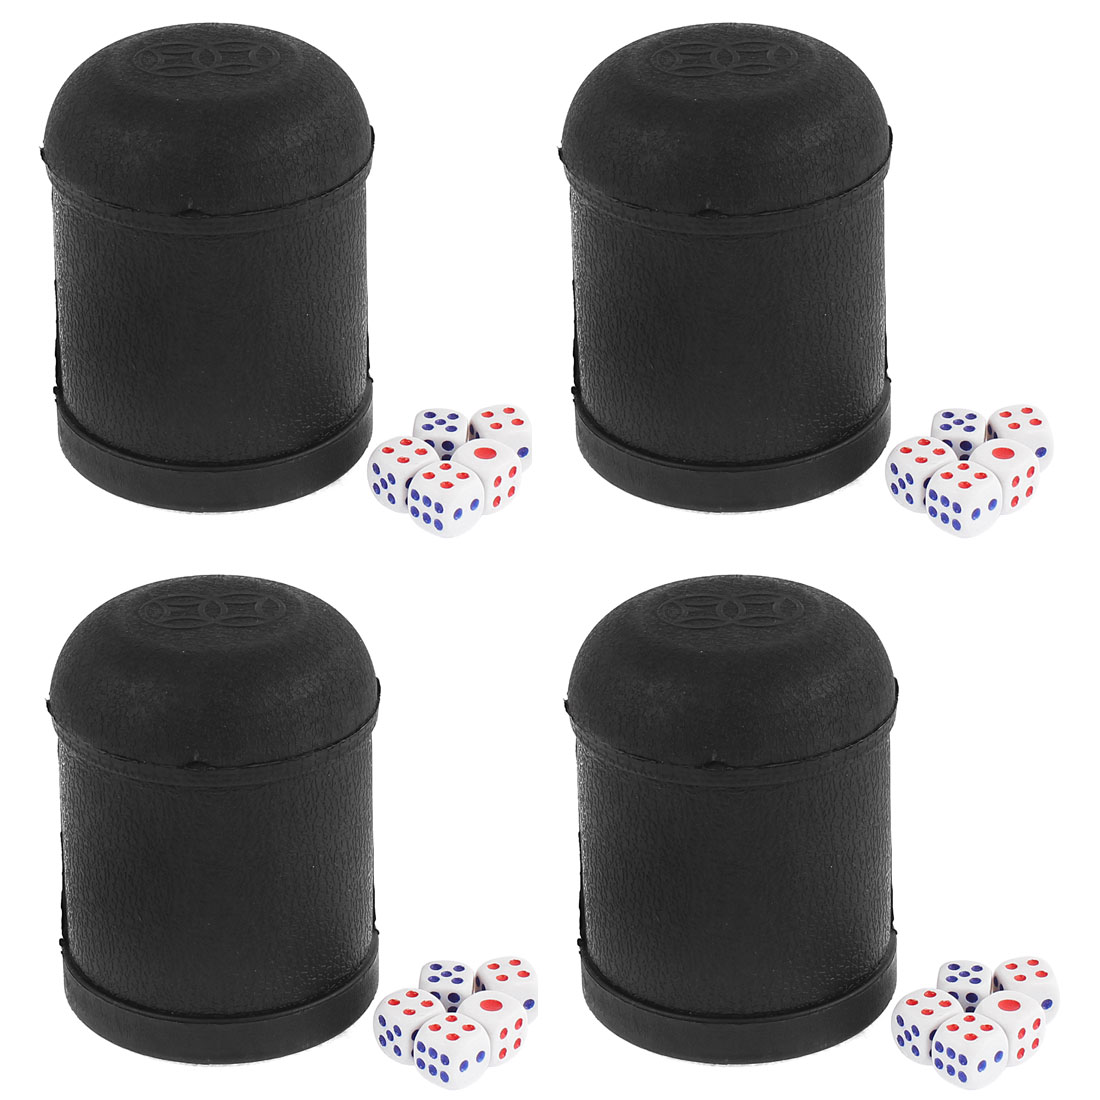 KTV Party Bar Pub Guessing Game Hand Shaker Dice Cup 4pcs w Dices